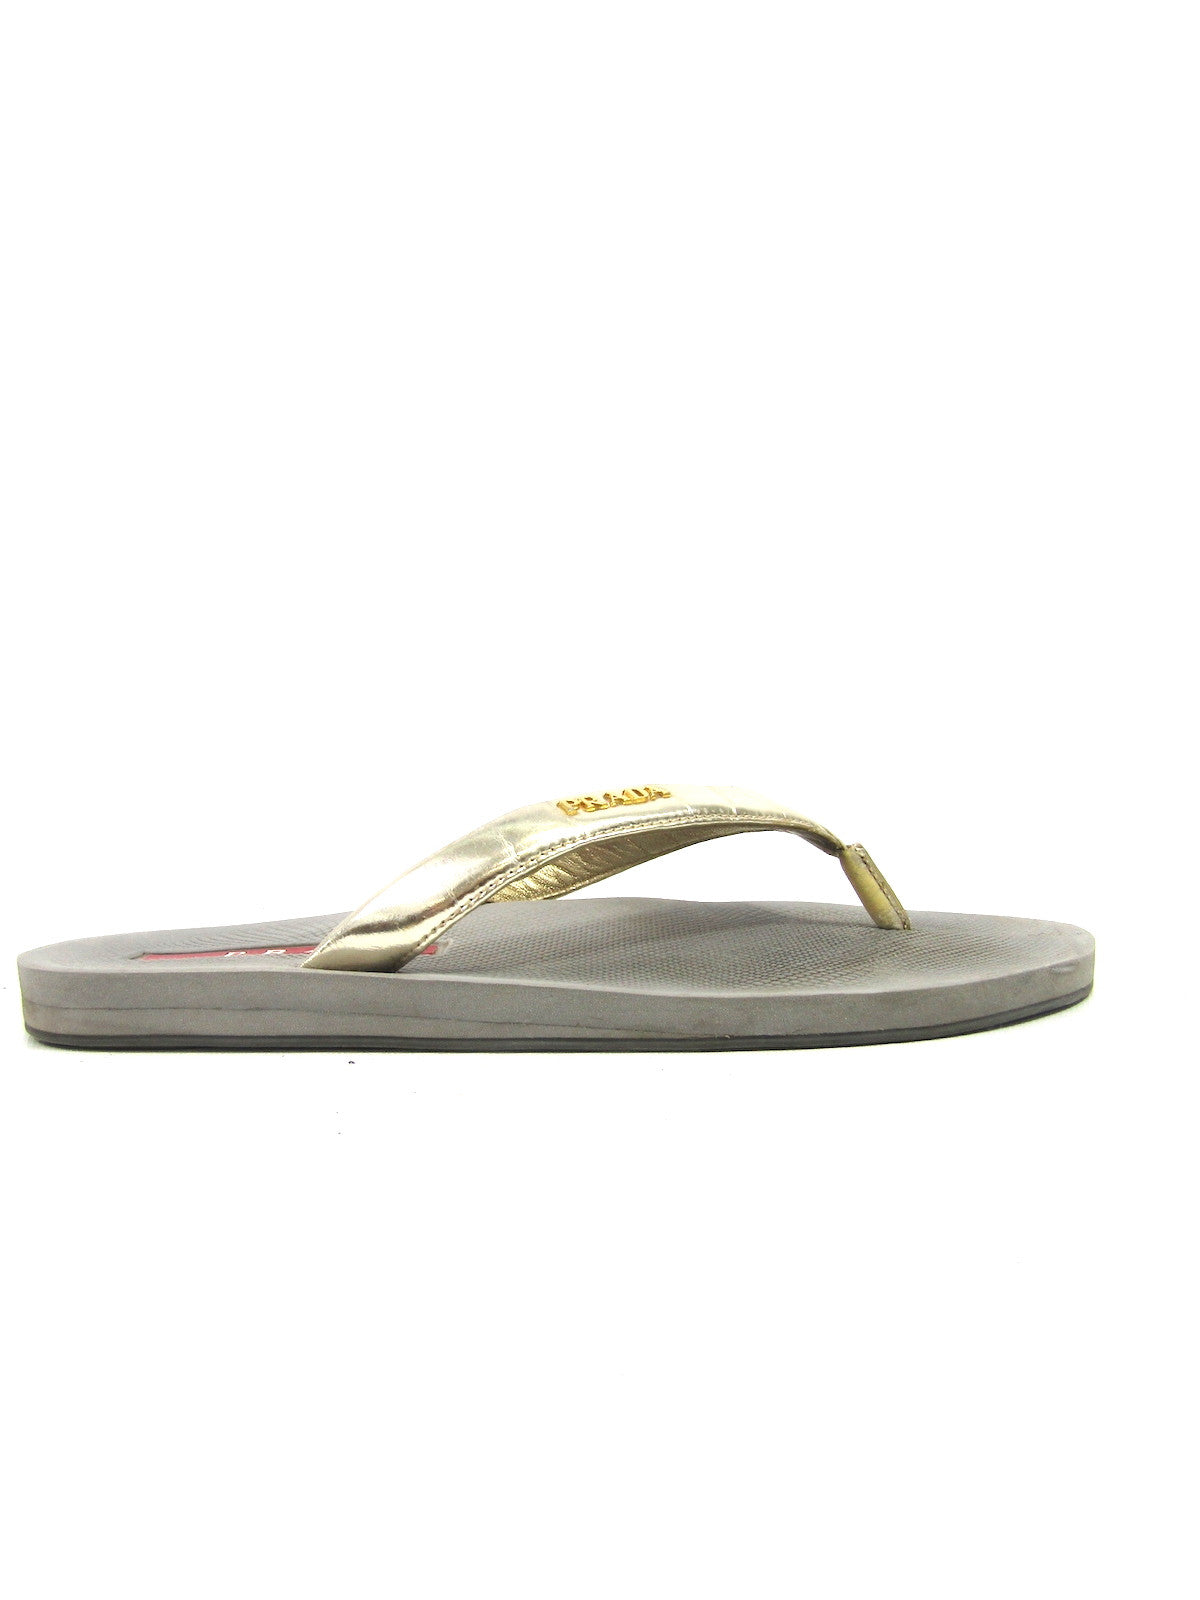 Prada Metallic Thong Sandals w/ Tags Discount Visit New Factory Outlet Cheap Price 2018 Newest Online Pick A Best Cheap Price ErJ21jaml